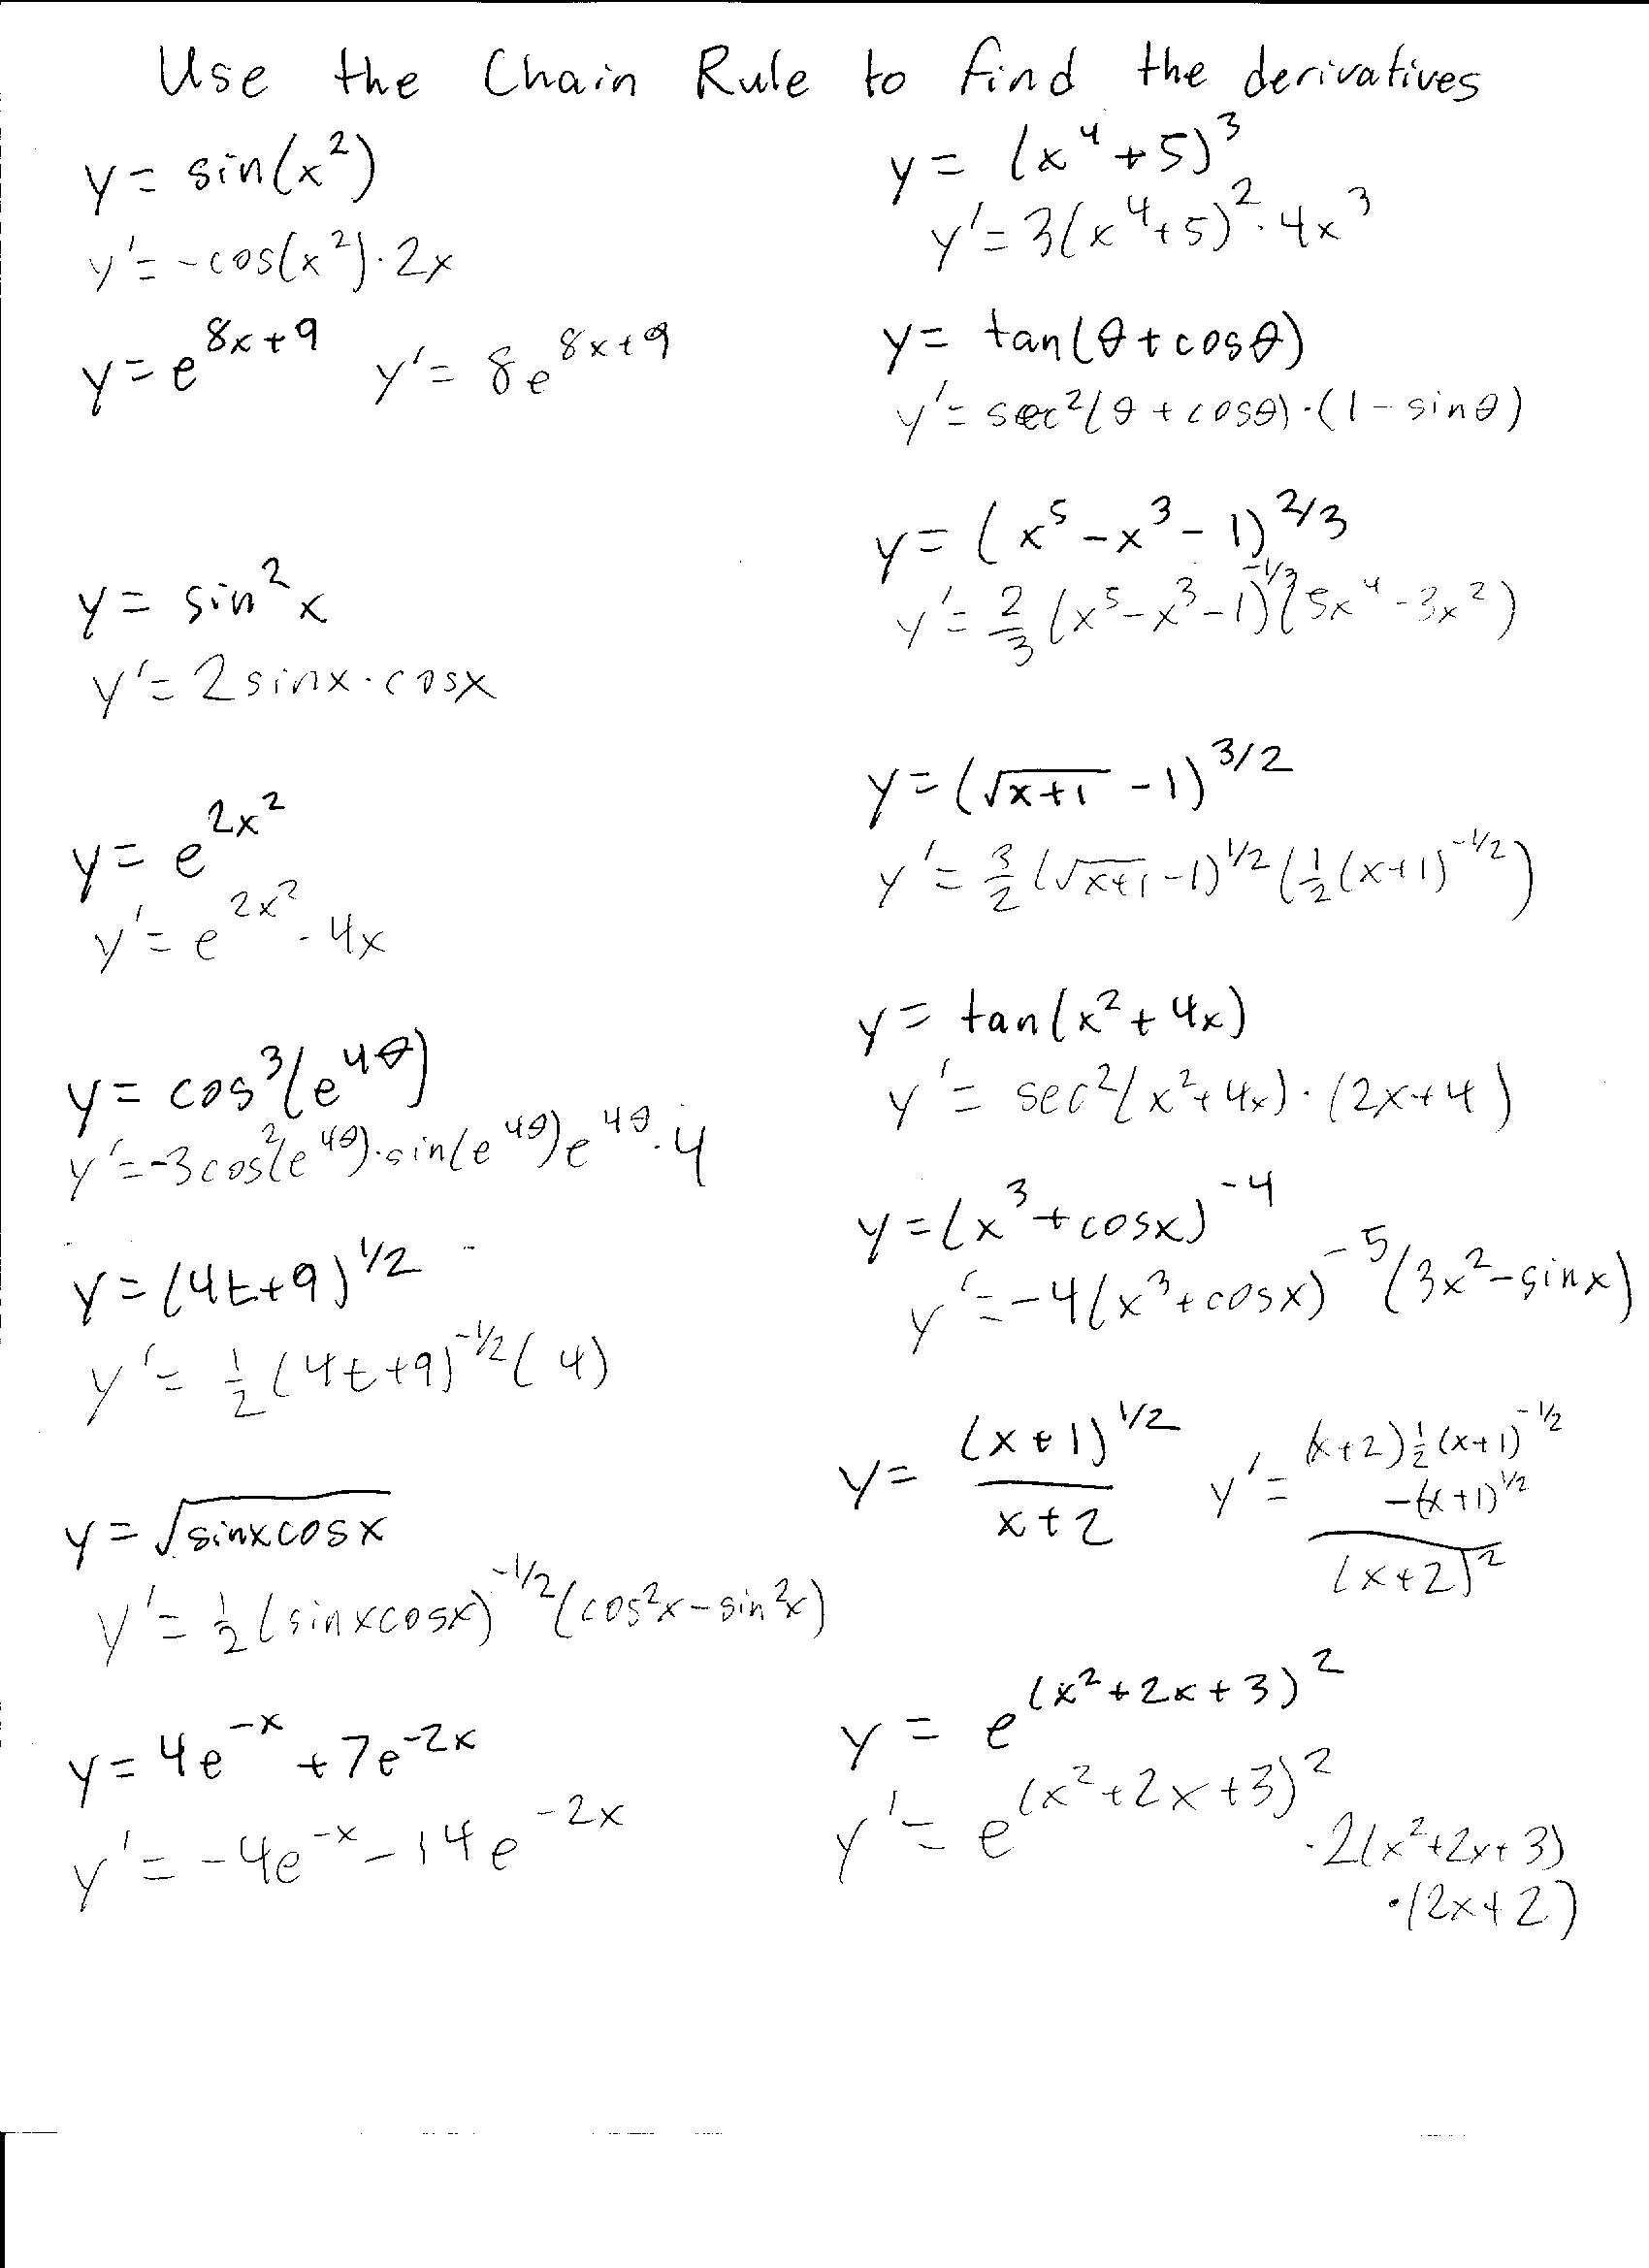 Product and Quotient Rule Worksheet Chain Rule Worksheet